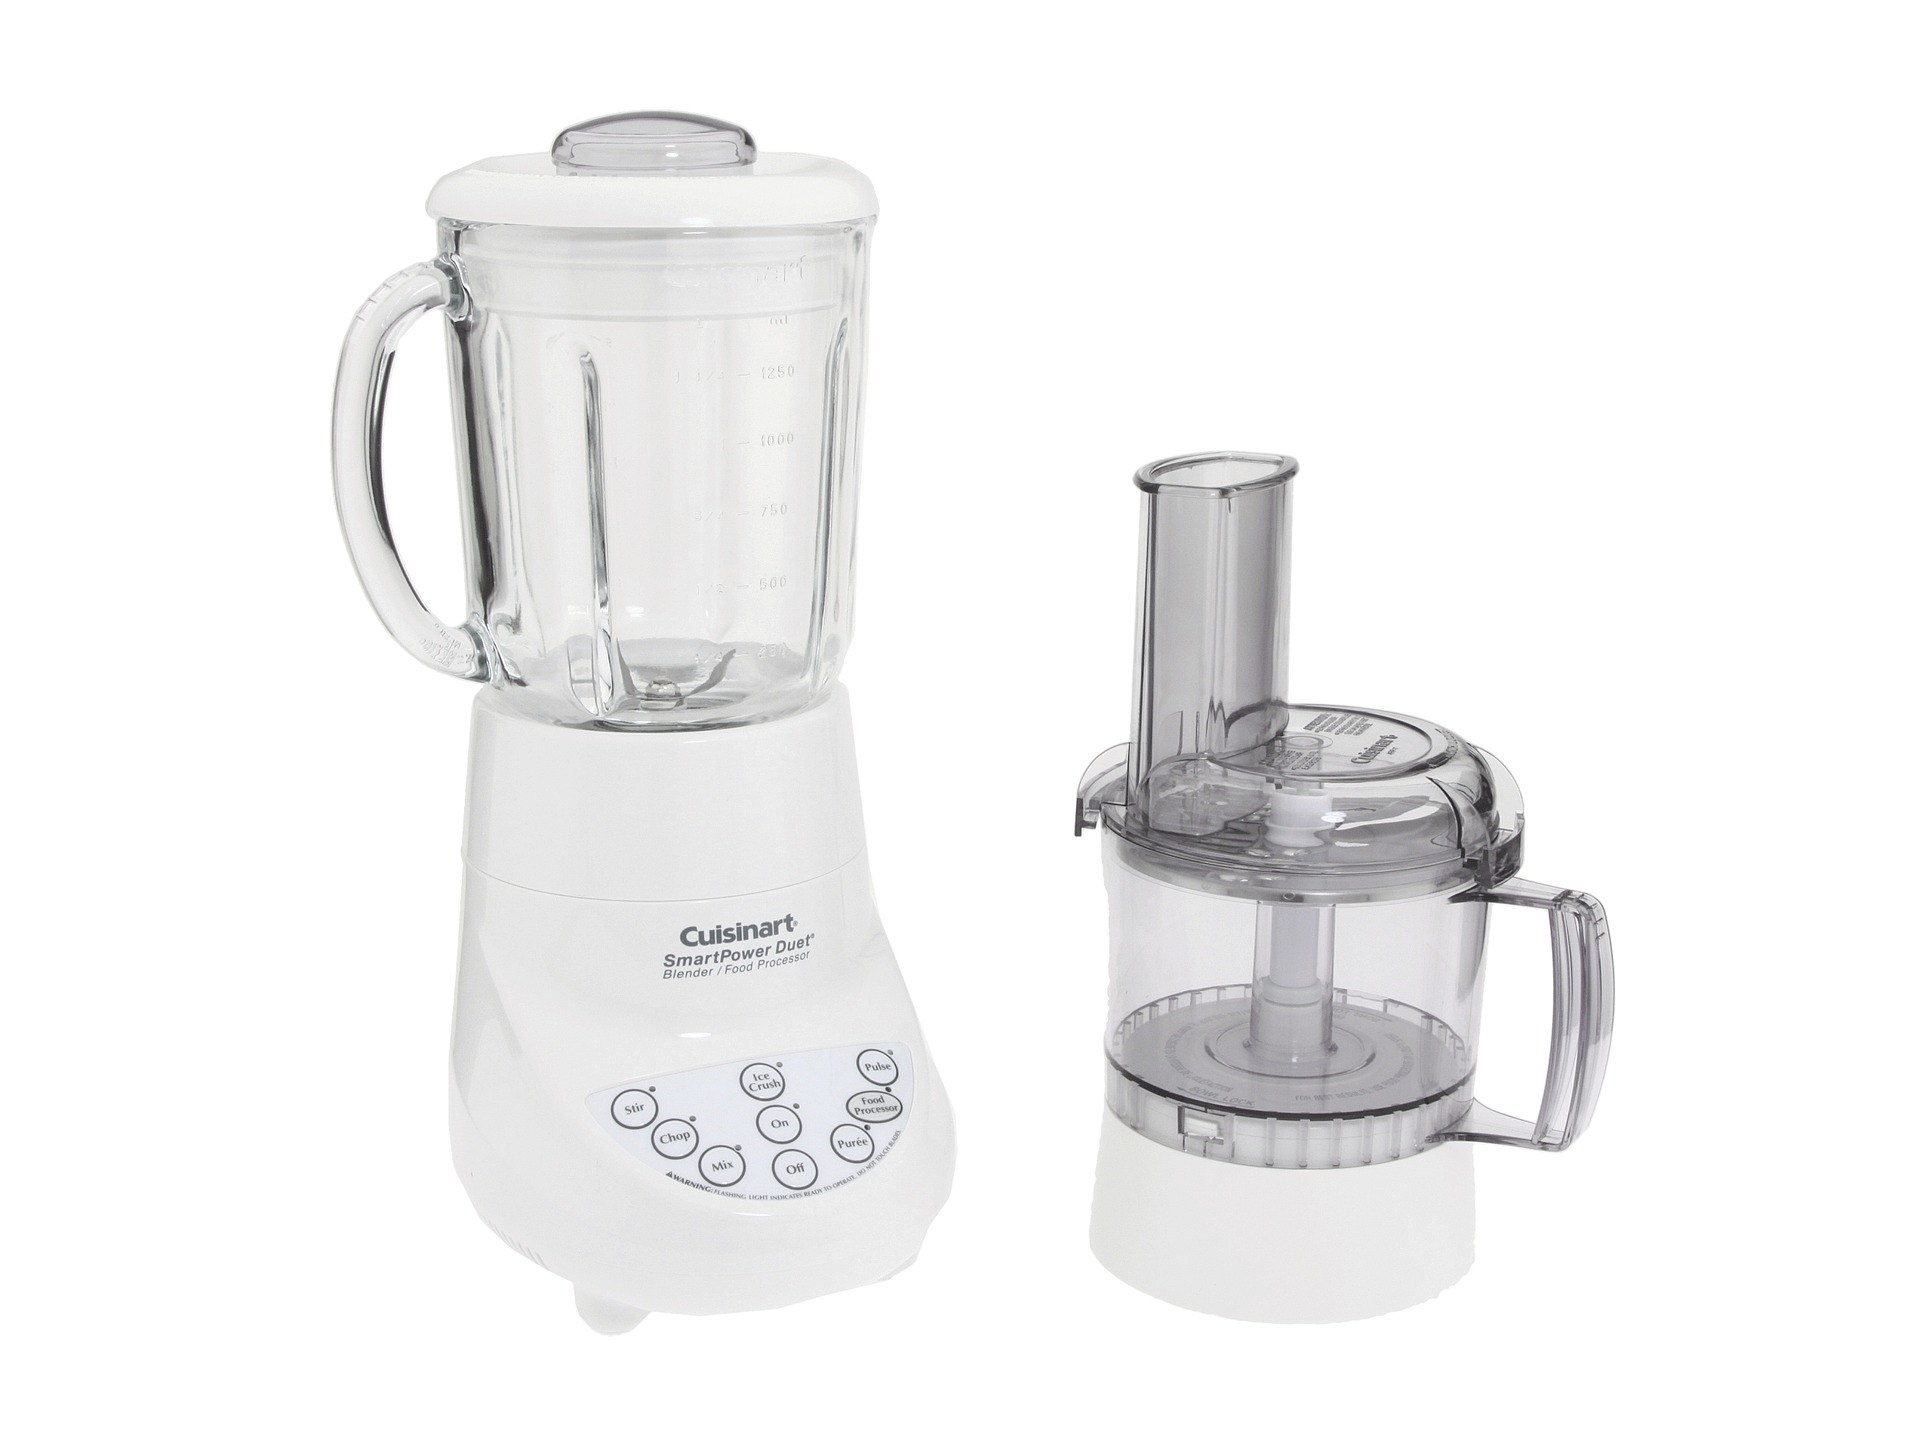 no results for cuisinart bfp 703 smartpower duet r blender food processor white search. Black Bedroom Furniture Sets. Home Design Ideas